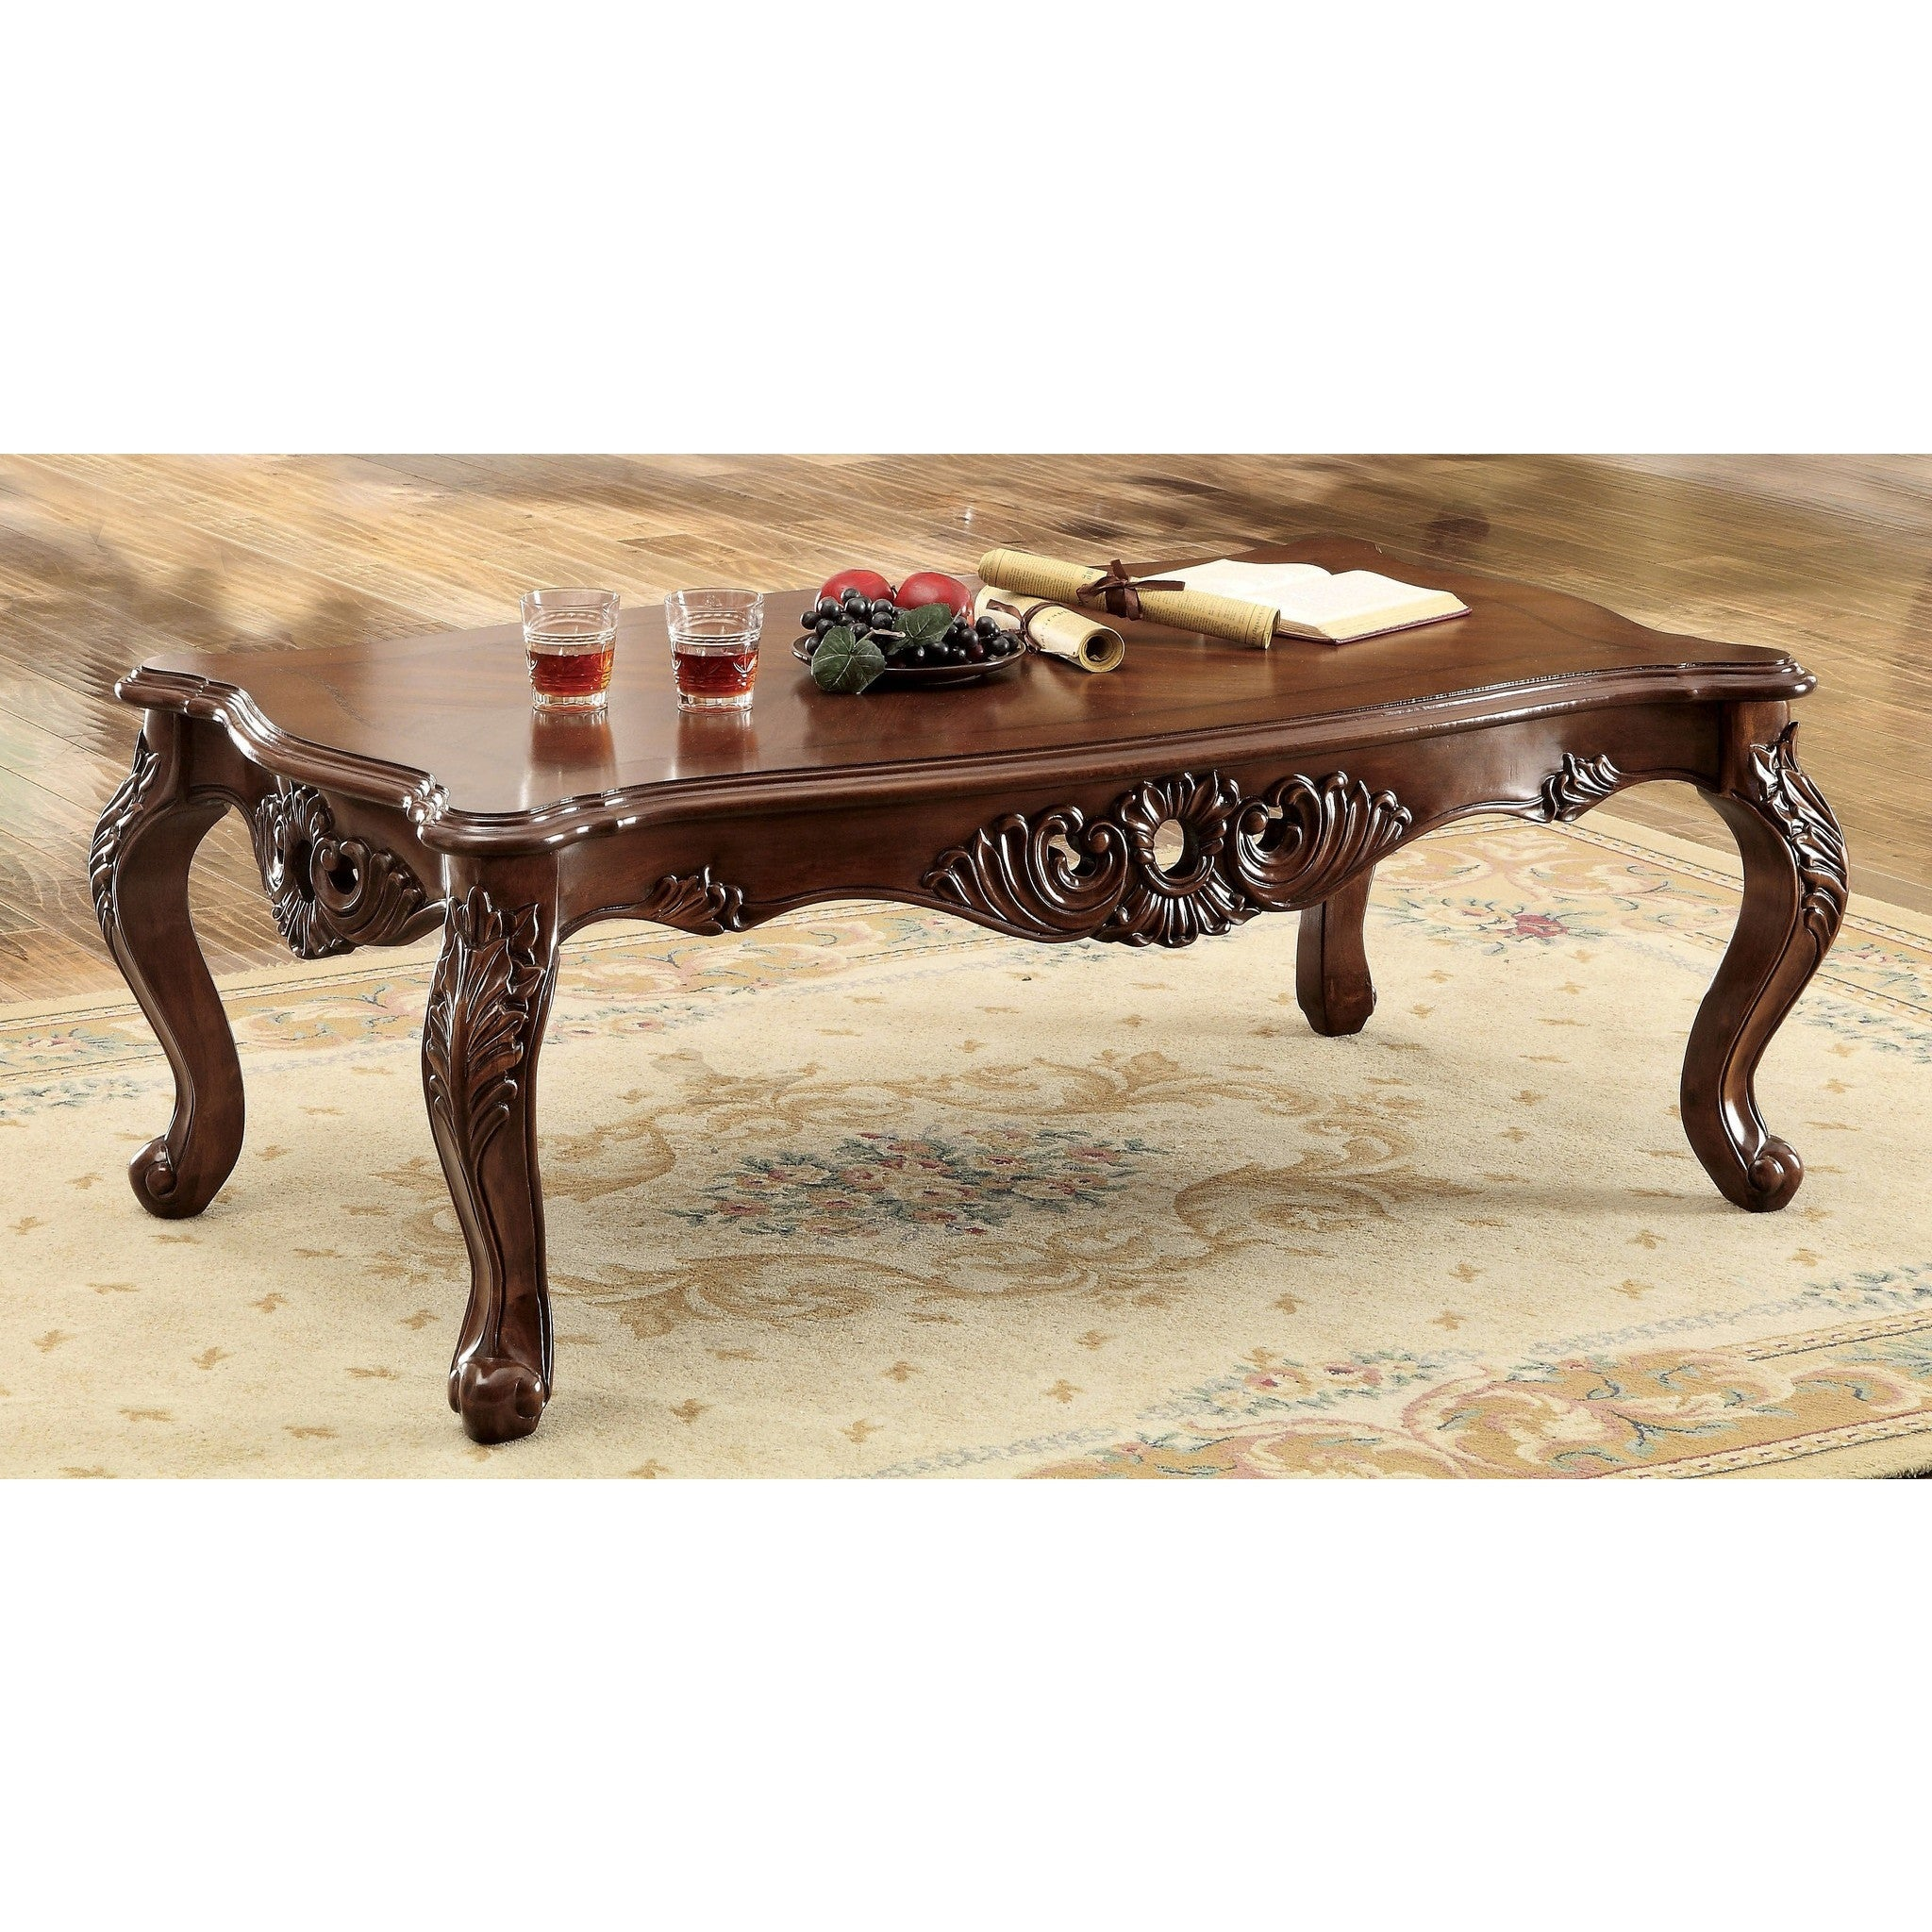 Surprising Deiko Traditional Style Carbriole Leg Coffee Table In Dark Oak Andrewgaddart Wooden Chair Designs For Living Room Andrewgaddartcom